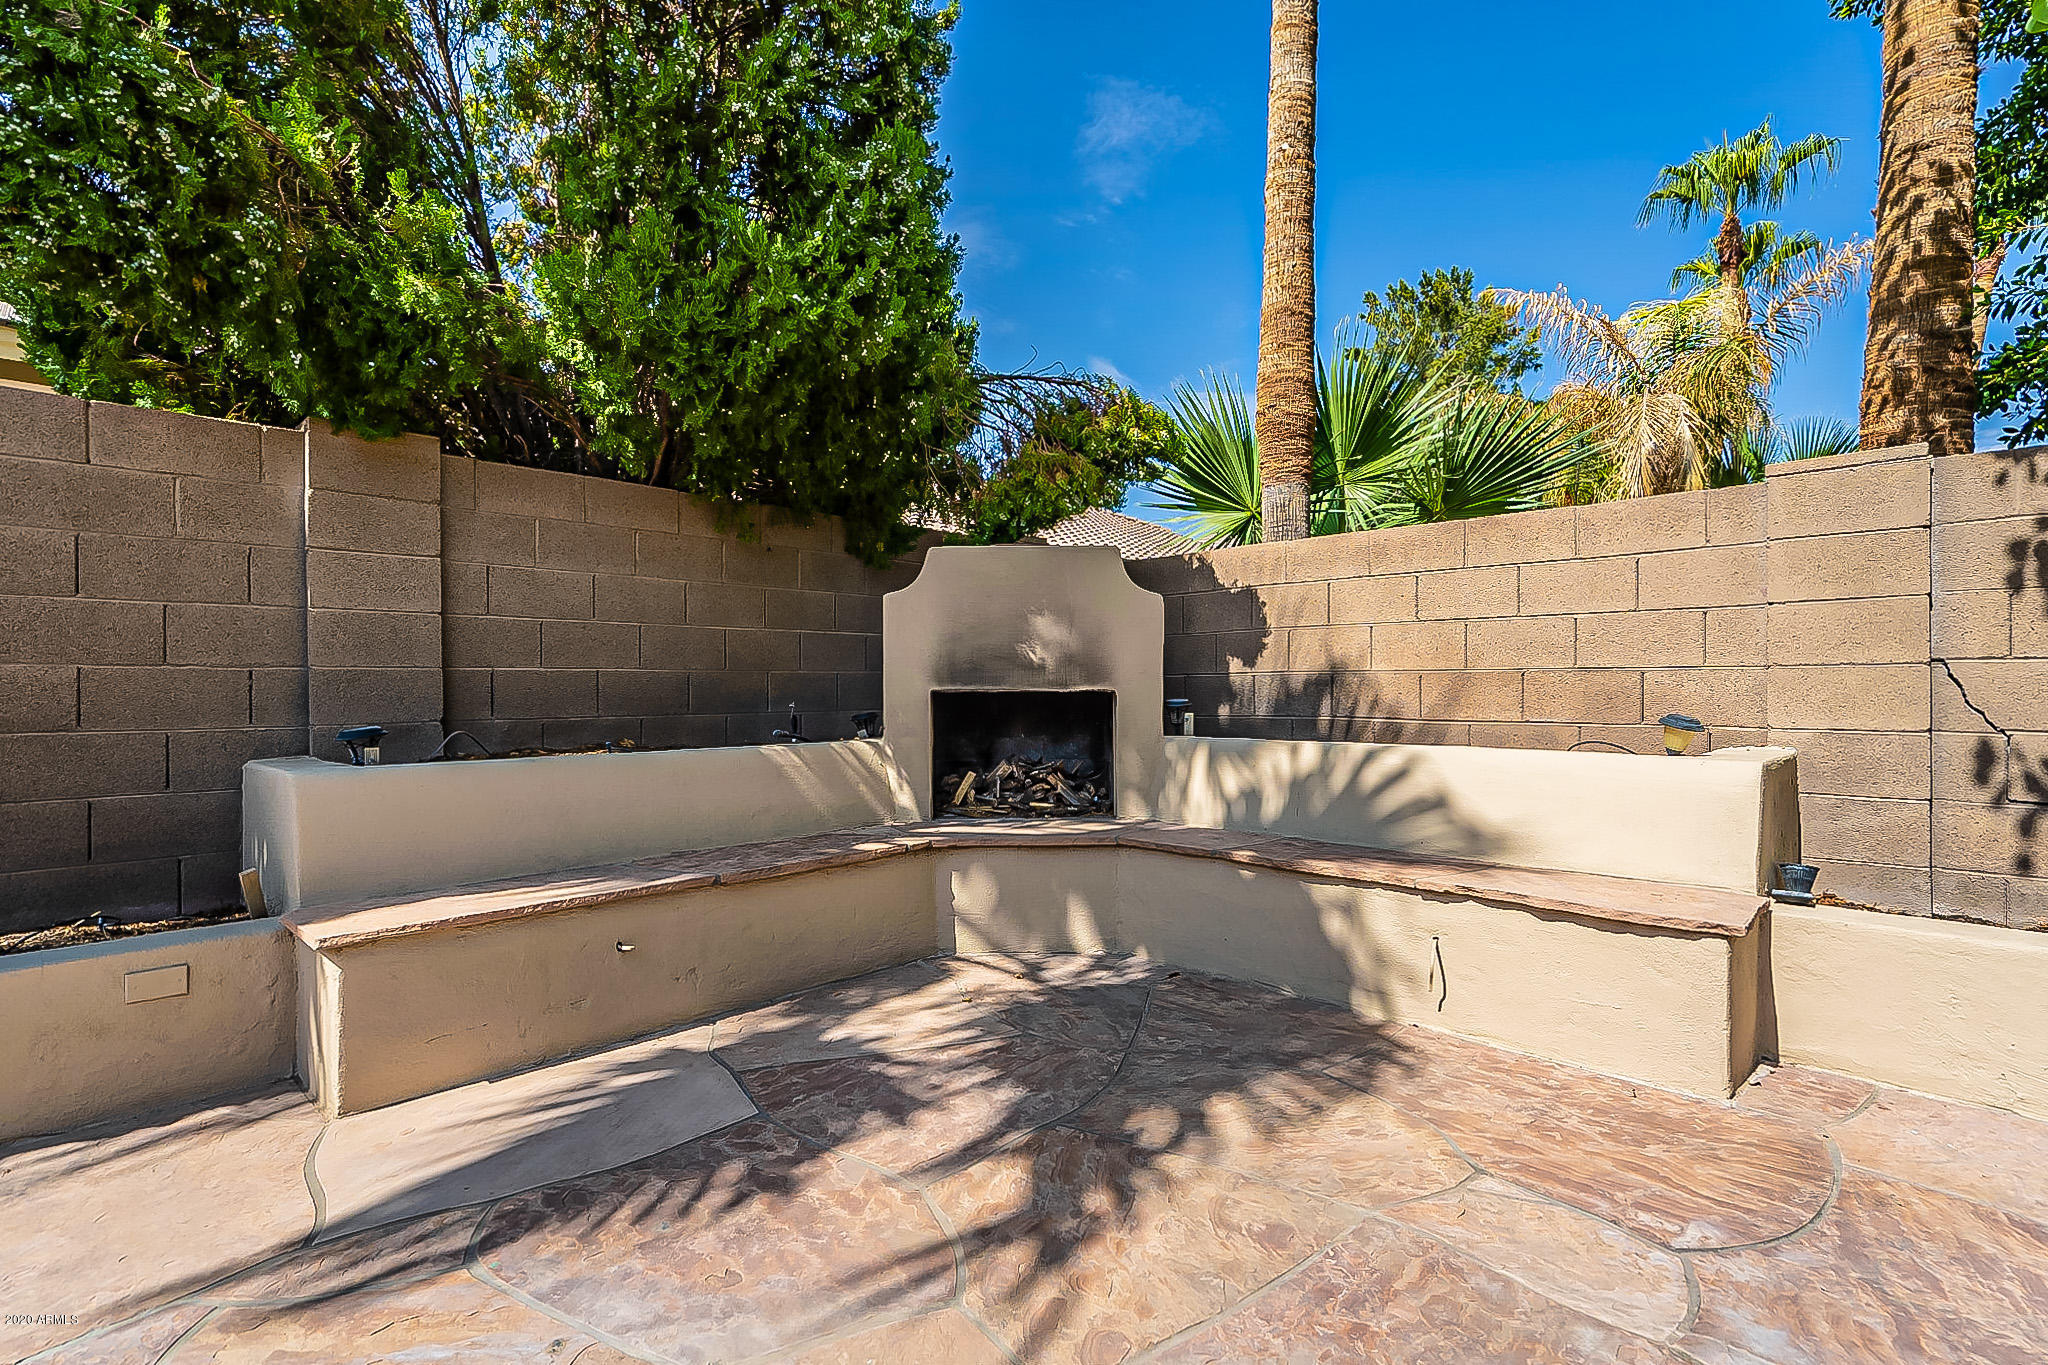 MLS 6136378 8048 S DATELAND Drive, Tempe, AZ 85284 Tempe AZ Gated